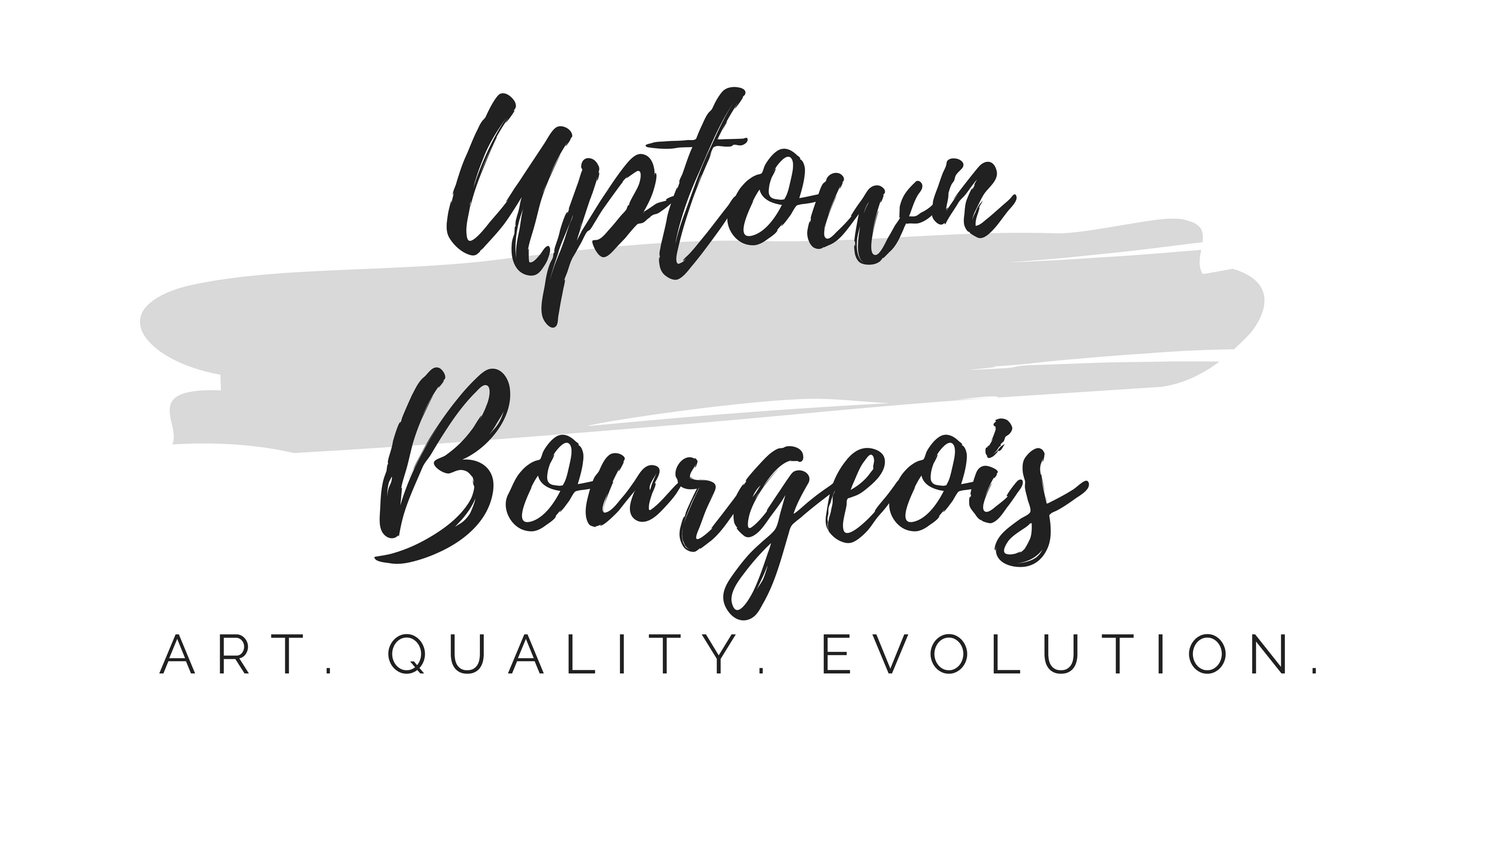 Uptown Bourgeois